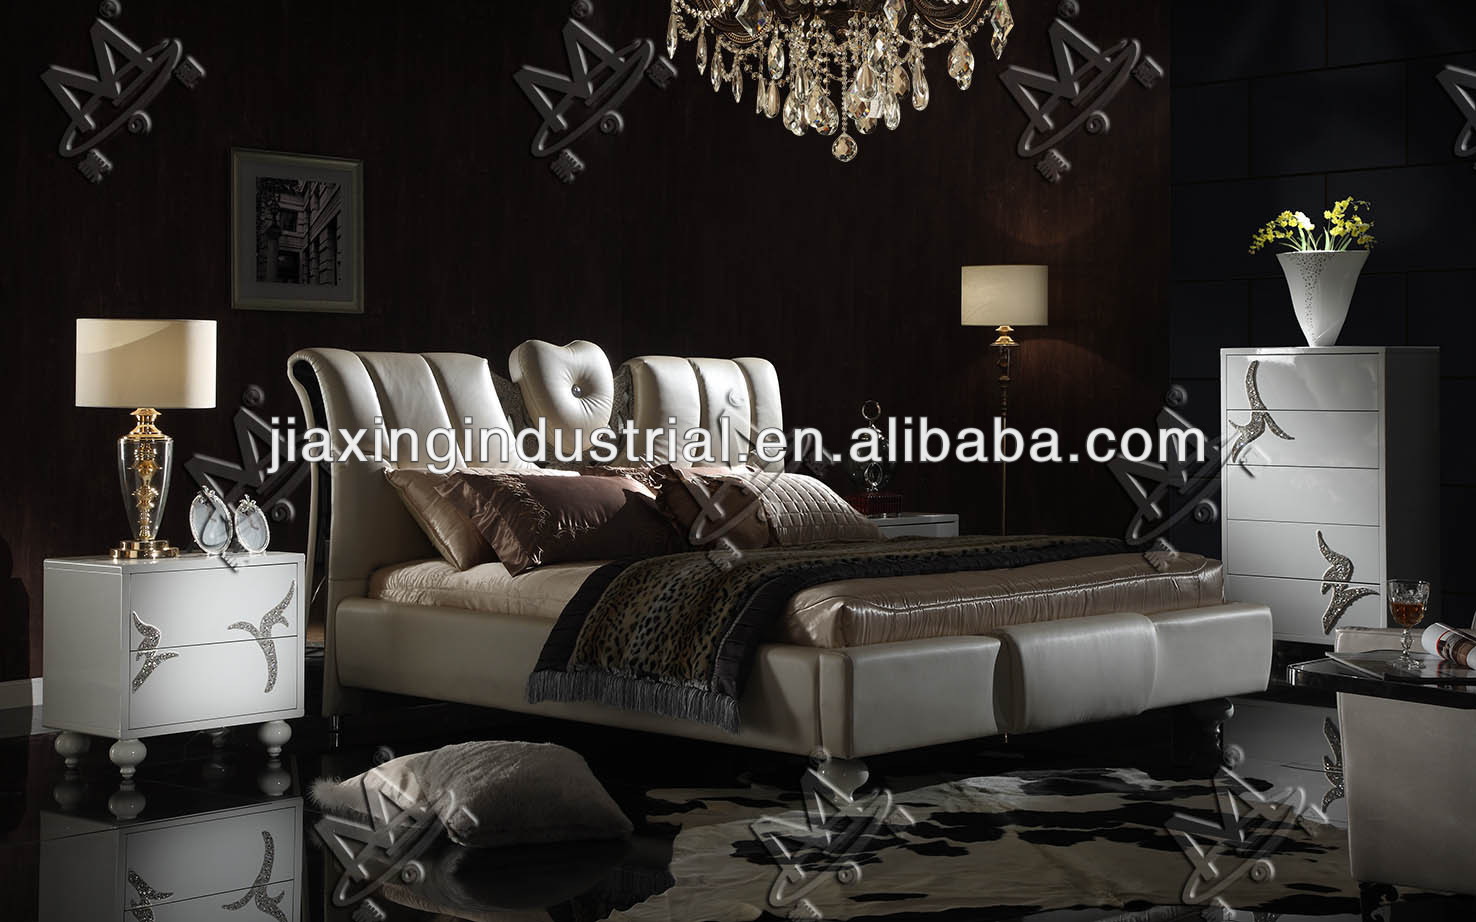 high quality cool bed for sale / pictures of designer bed for sale H1290